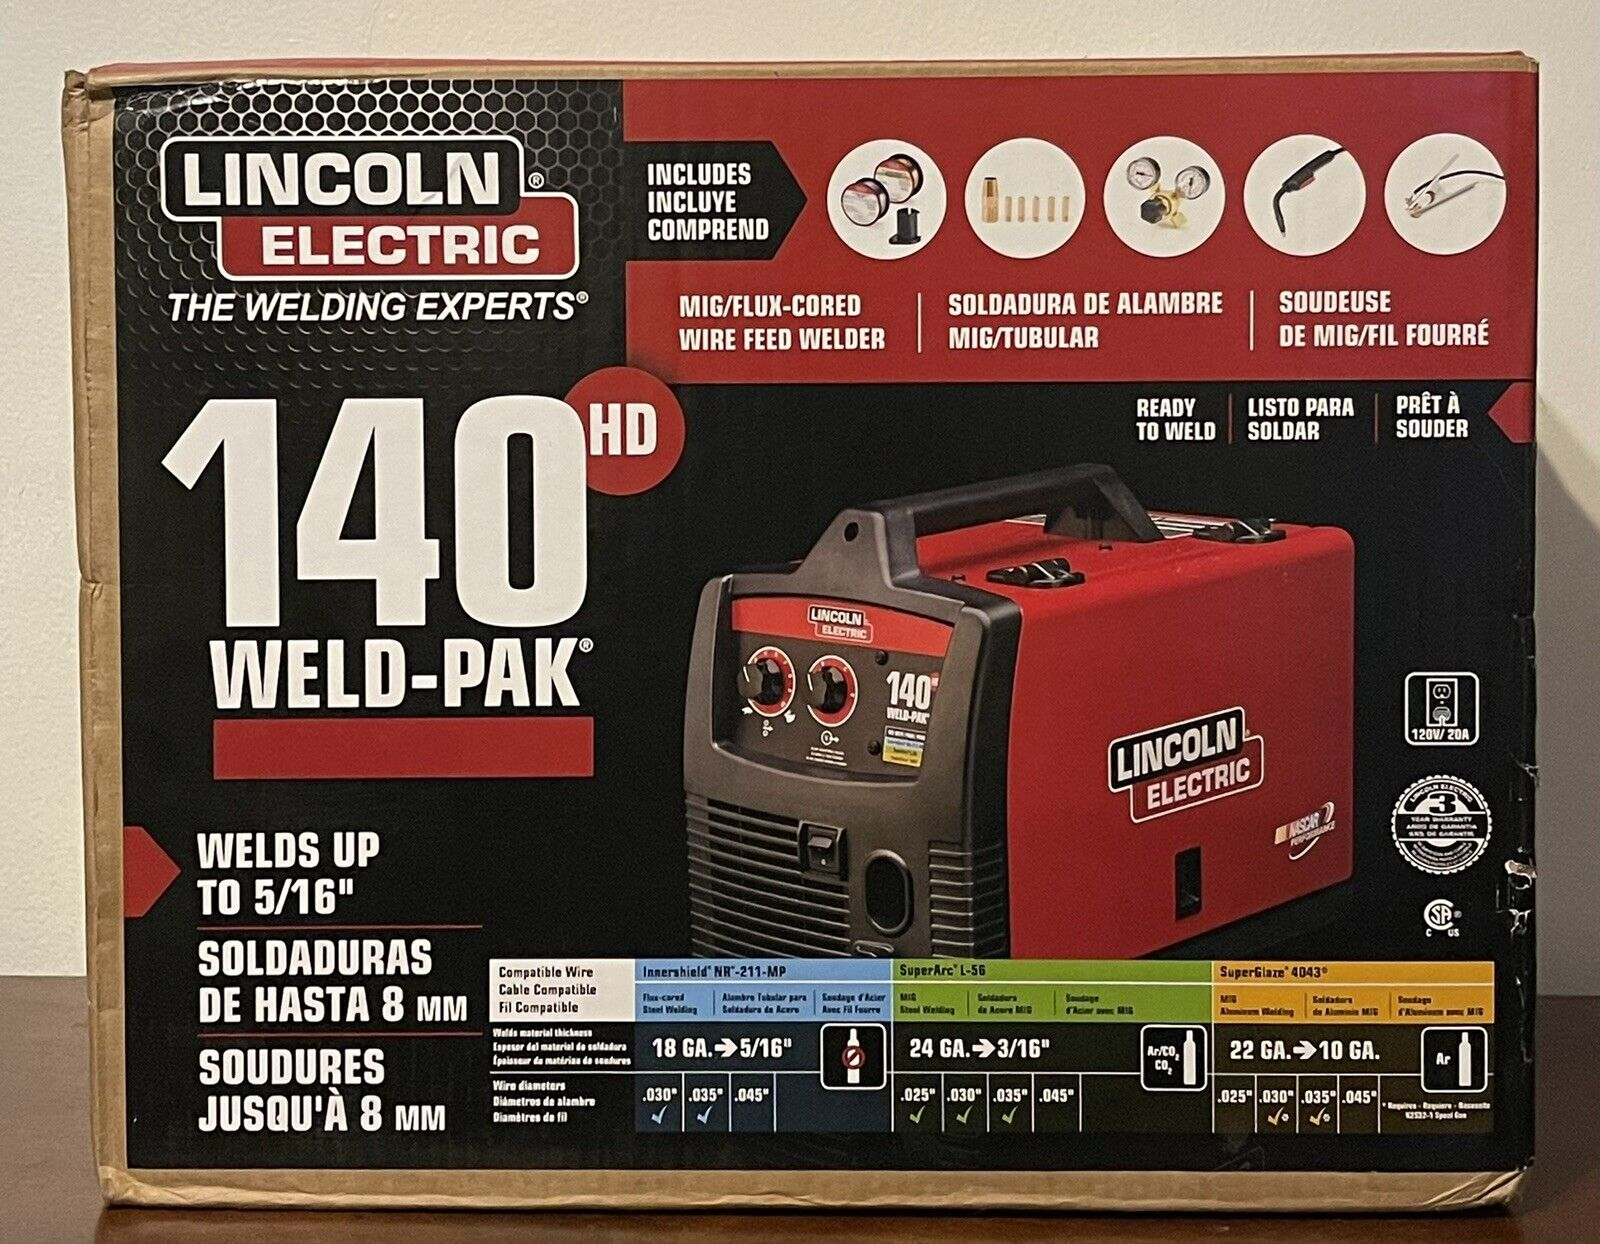 New Lincoln electric 140 hd weld-pak 110 Welder K2514-1 Mig Wire Feed NEW.